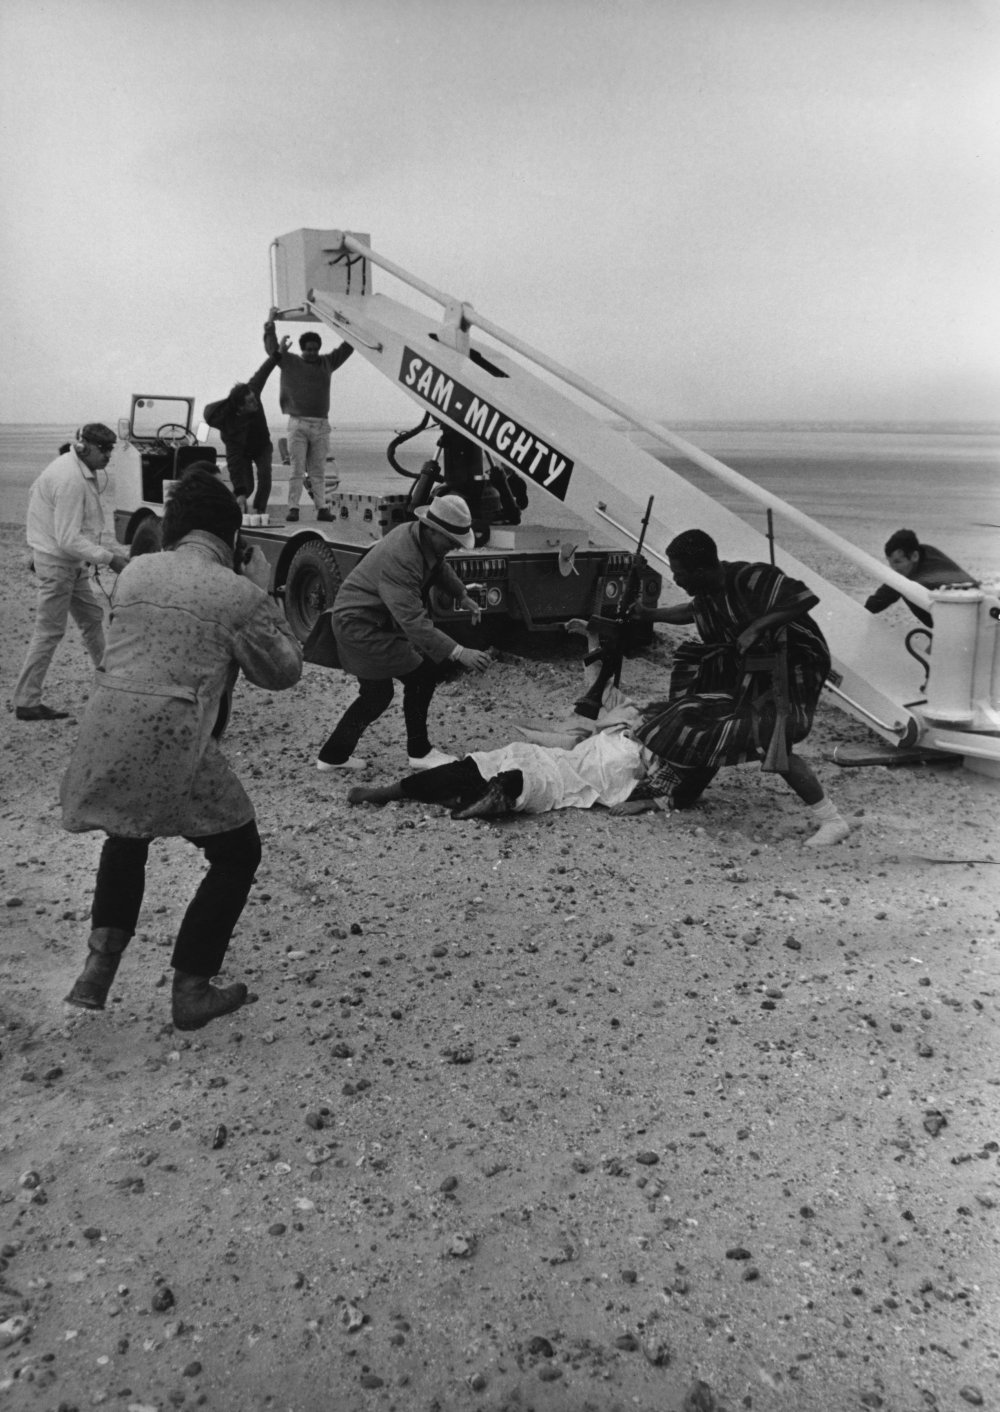 In the very final moments, Godard himself comes into shot running with the characters. He is the man wearing the beige mac and white hat. In the moment when Eve Democracy collapses, he is seen pouring red paint onto her body before it is hoisted up on the crane rig. The final shot of the film is Wiazemsky's body being lifted by this crane into the sky